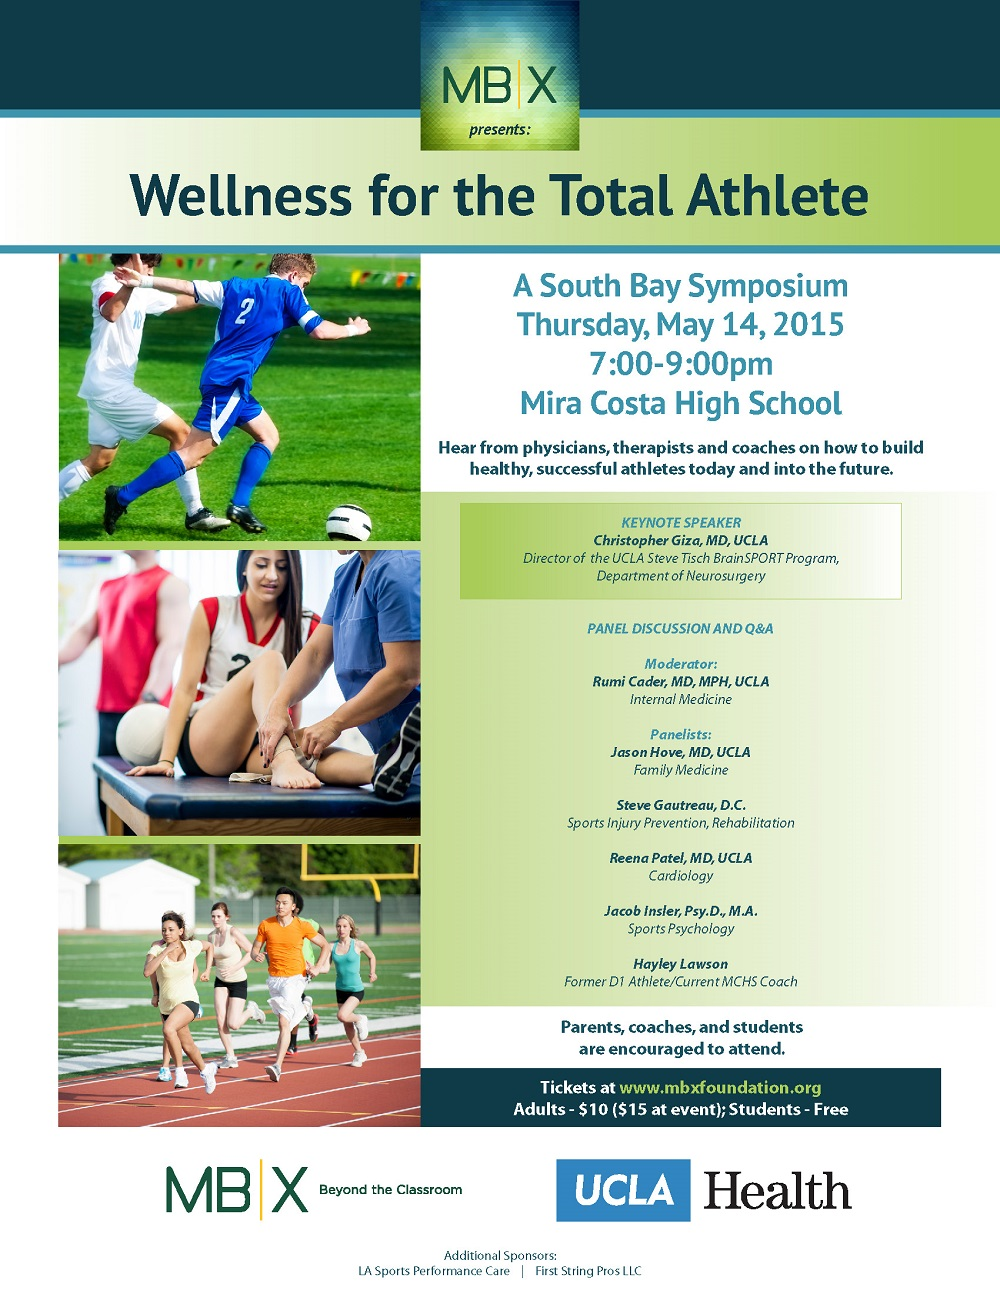 Wellness for the Total Athlete | Redondo Beach Chamber of